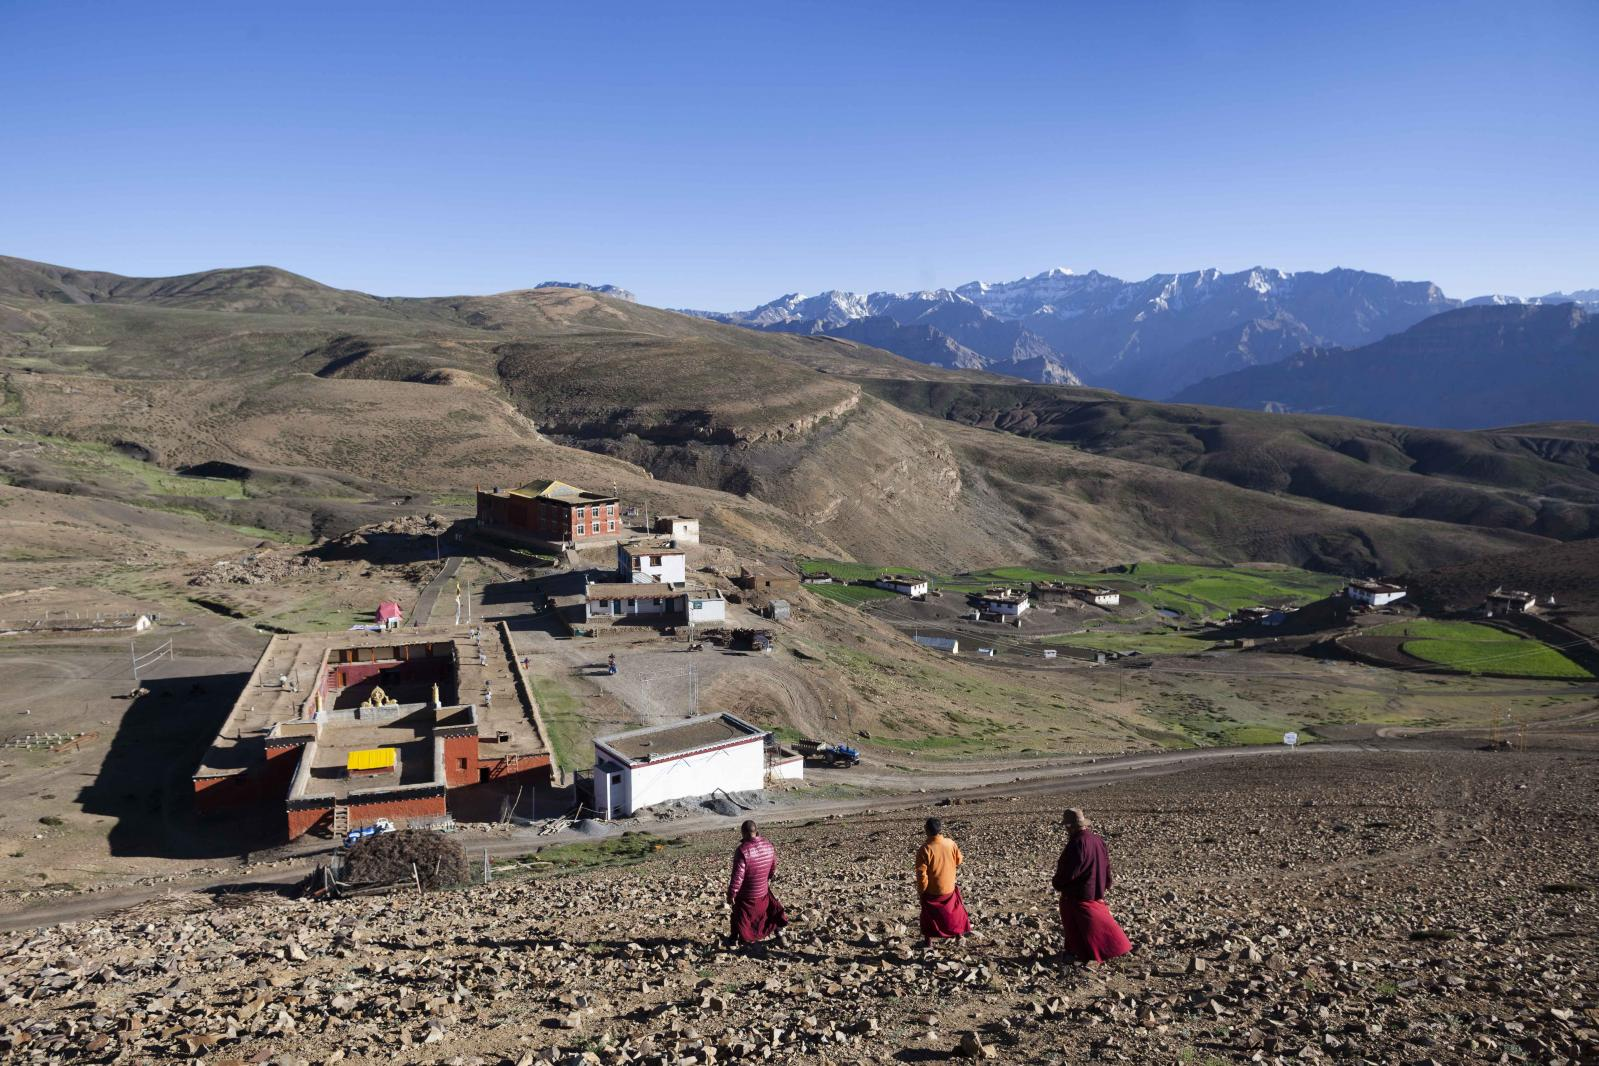 Buddhist monks walk down from a hill overlooking Tnagyud Gompa monastery in Komik village, in Spiti Valley of the Indian northern state of Himachal Pradesh.